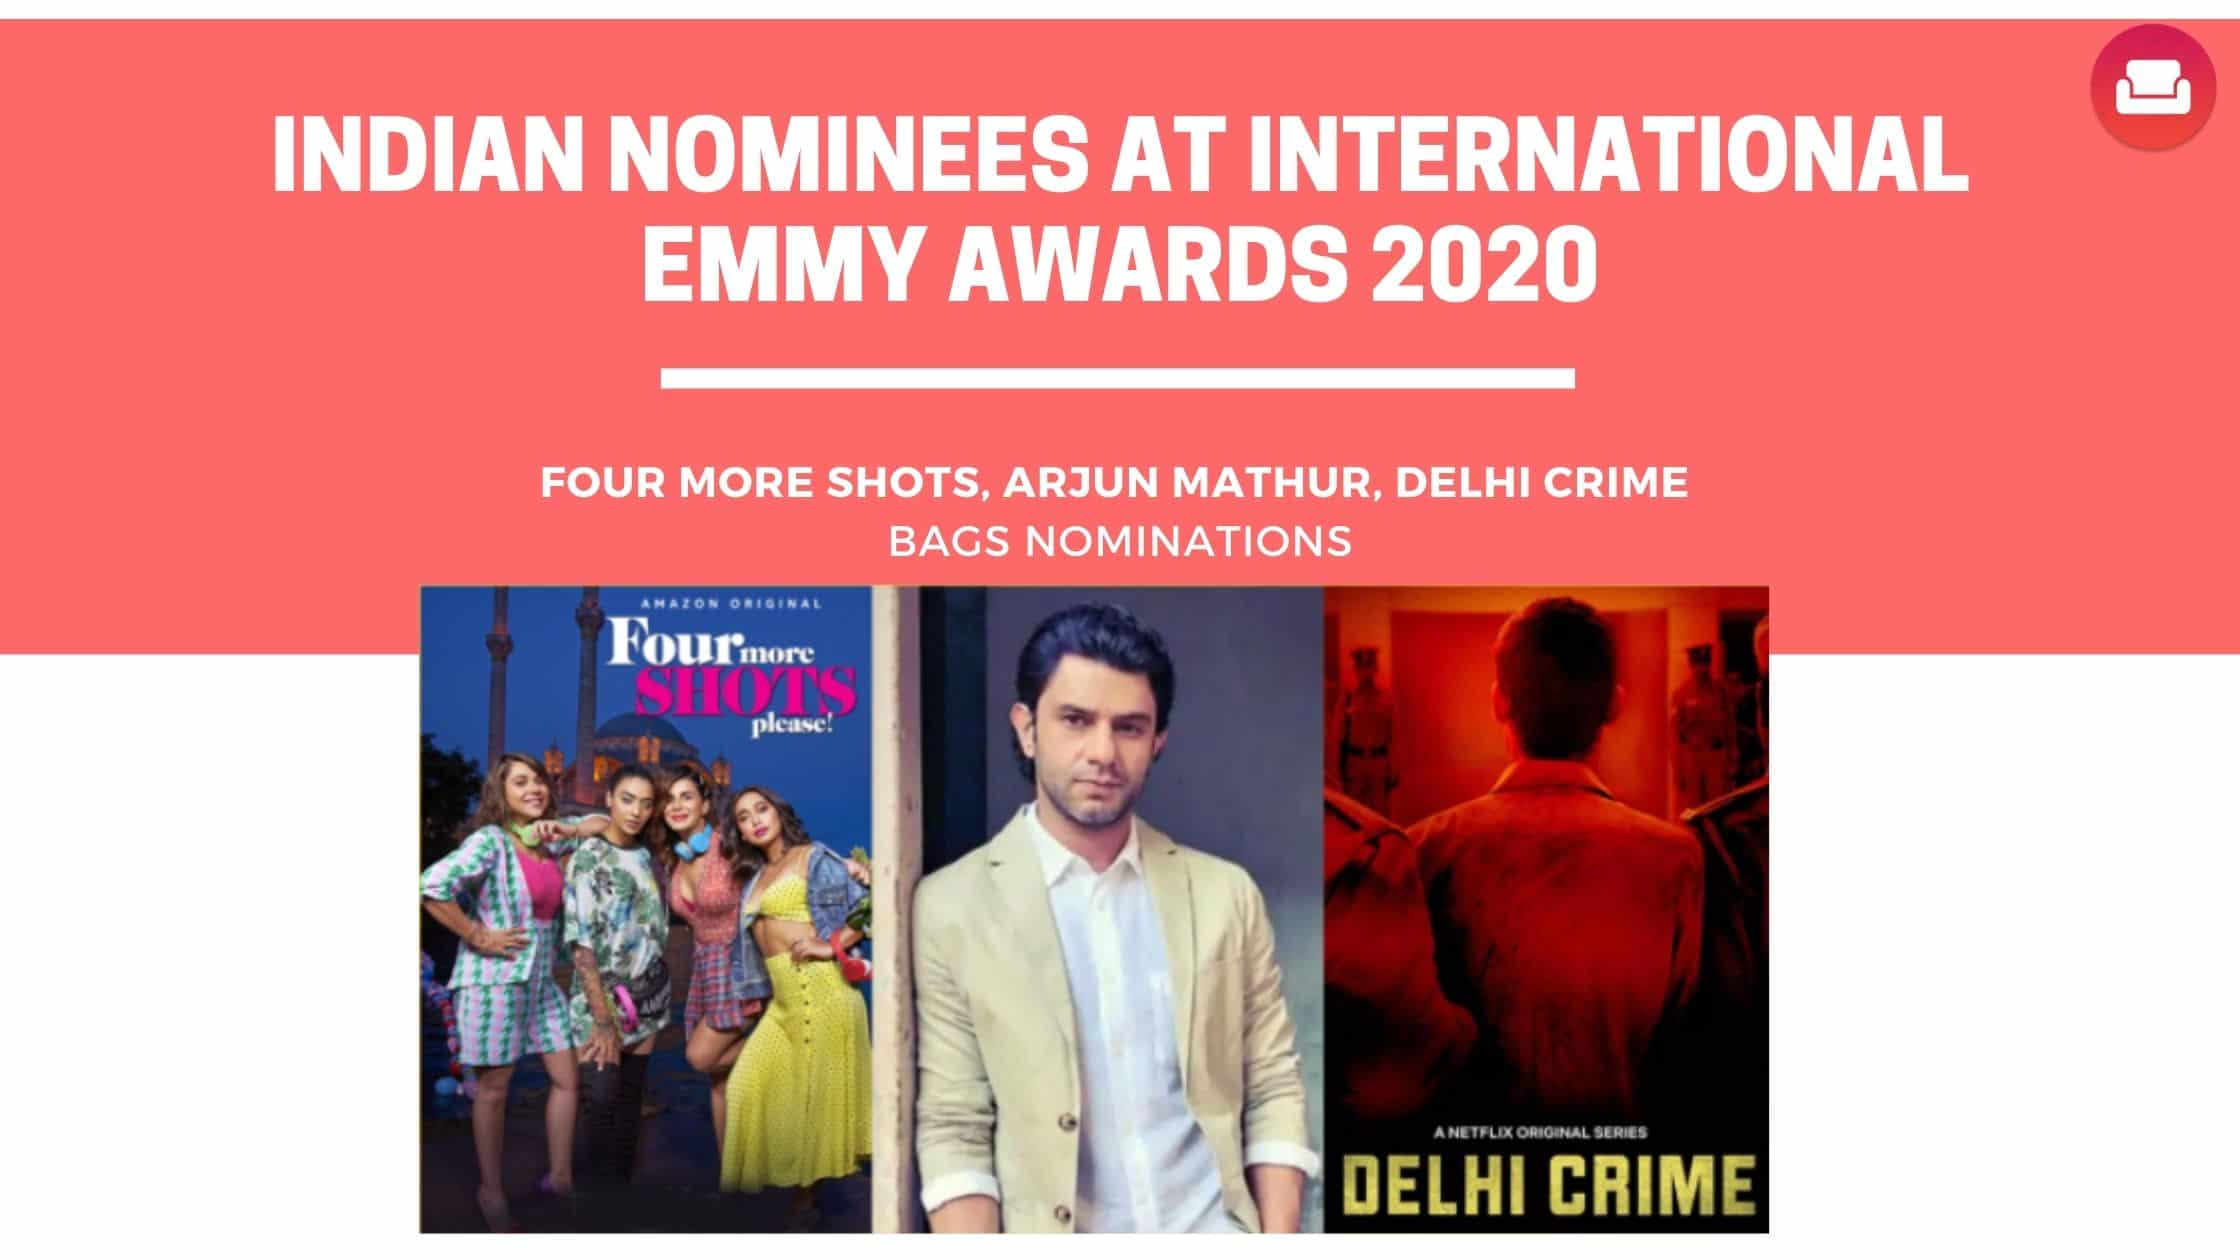 INTERNATIONAL EMMY 2020 – Indian Nominees